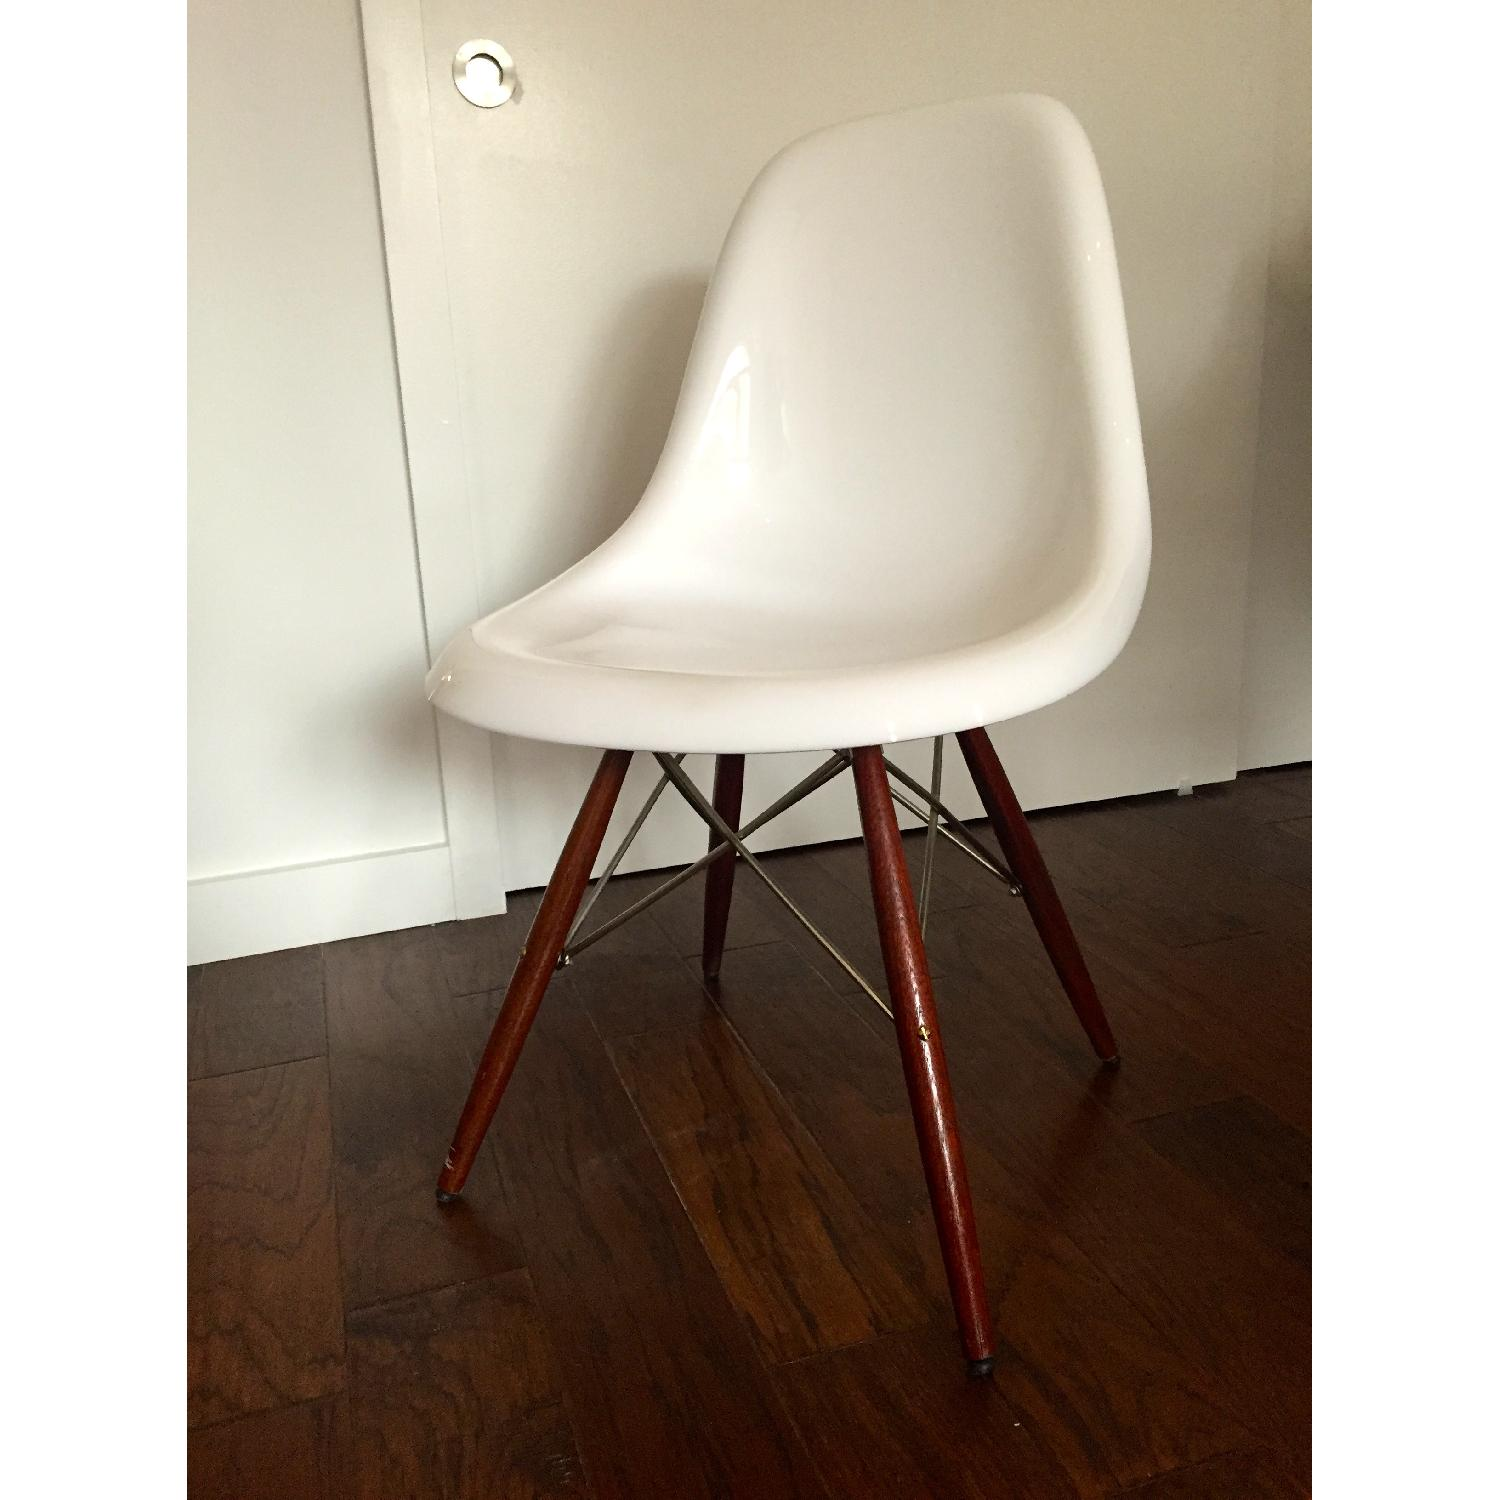 Used herman miller eames reproduction for sale in nyc for Plastic chair eames replica